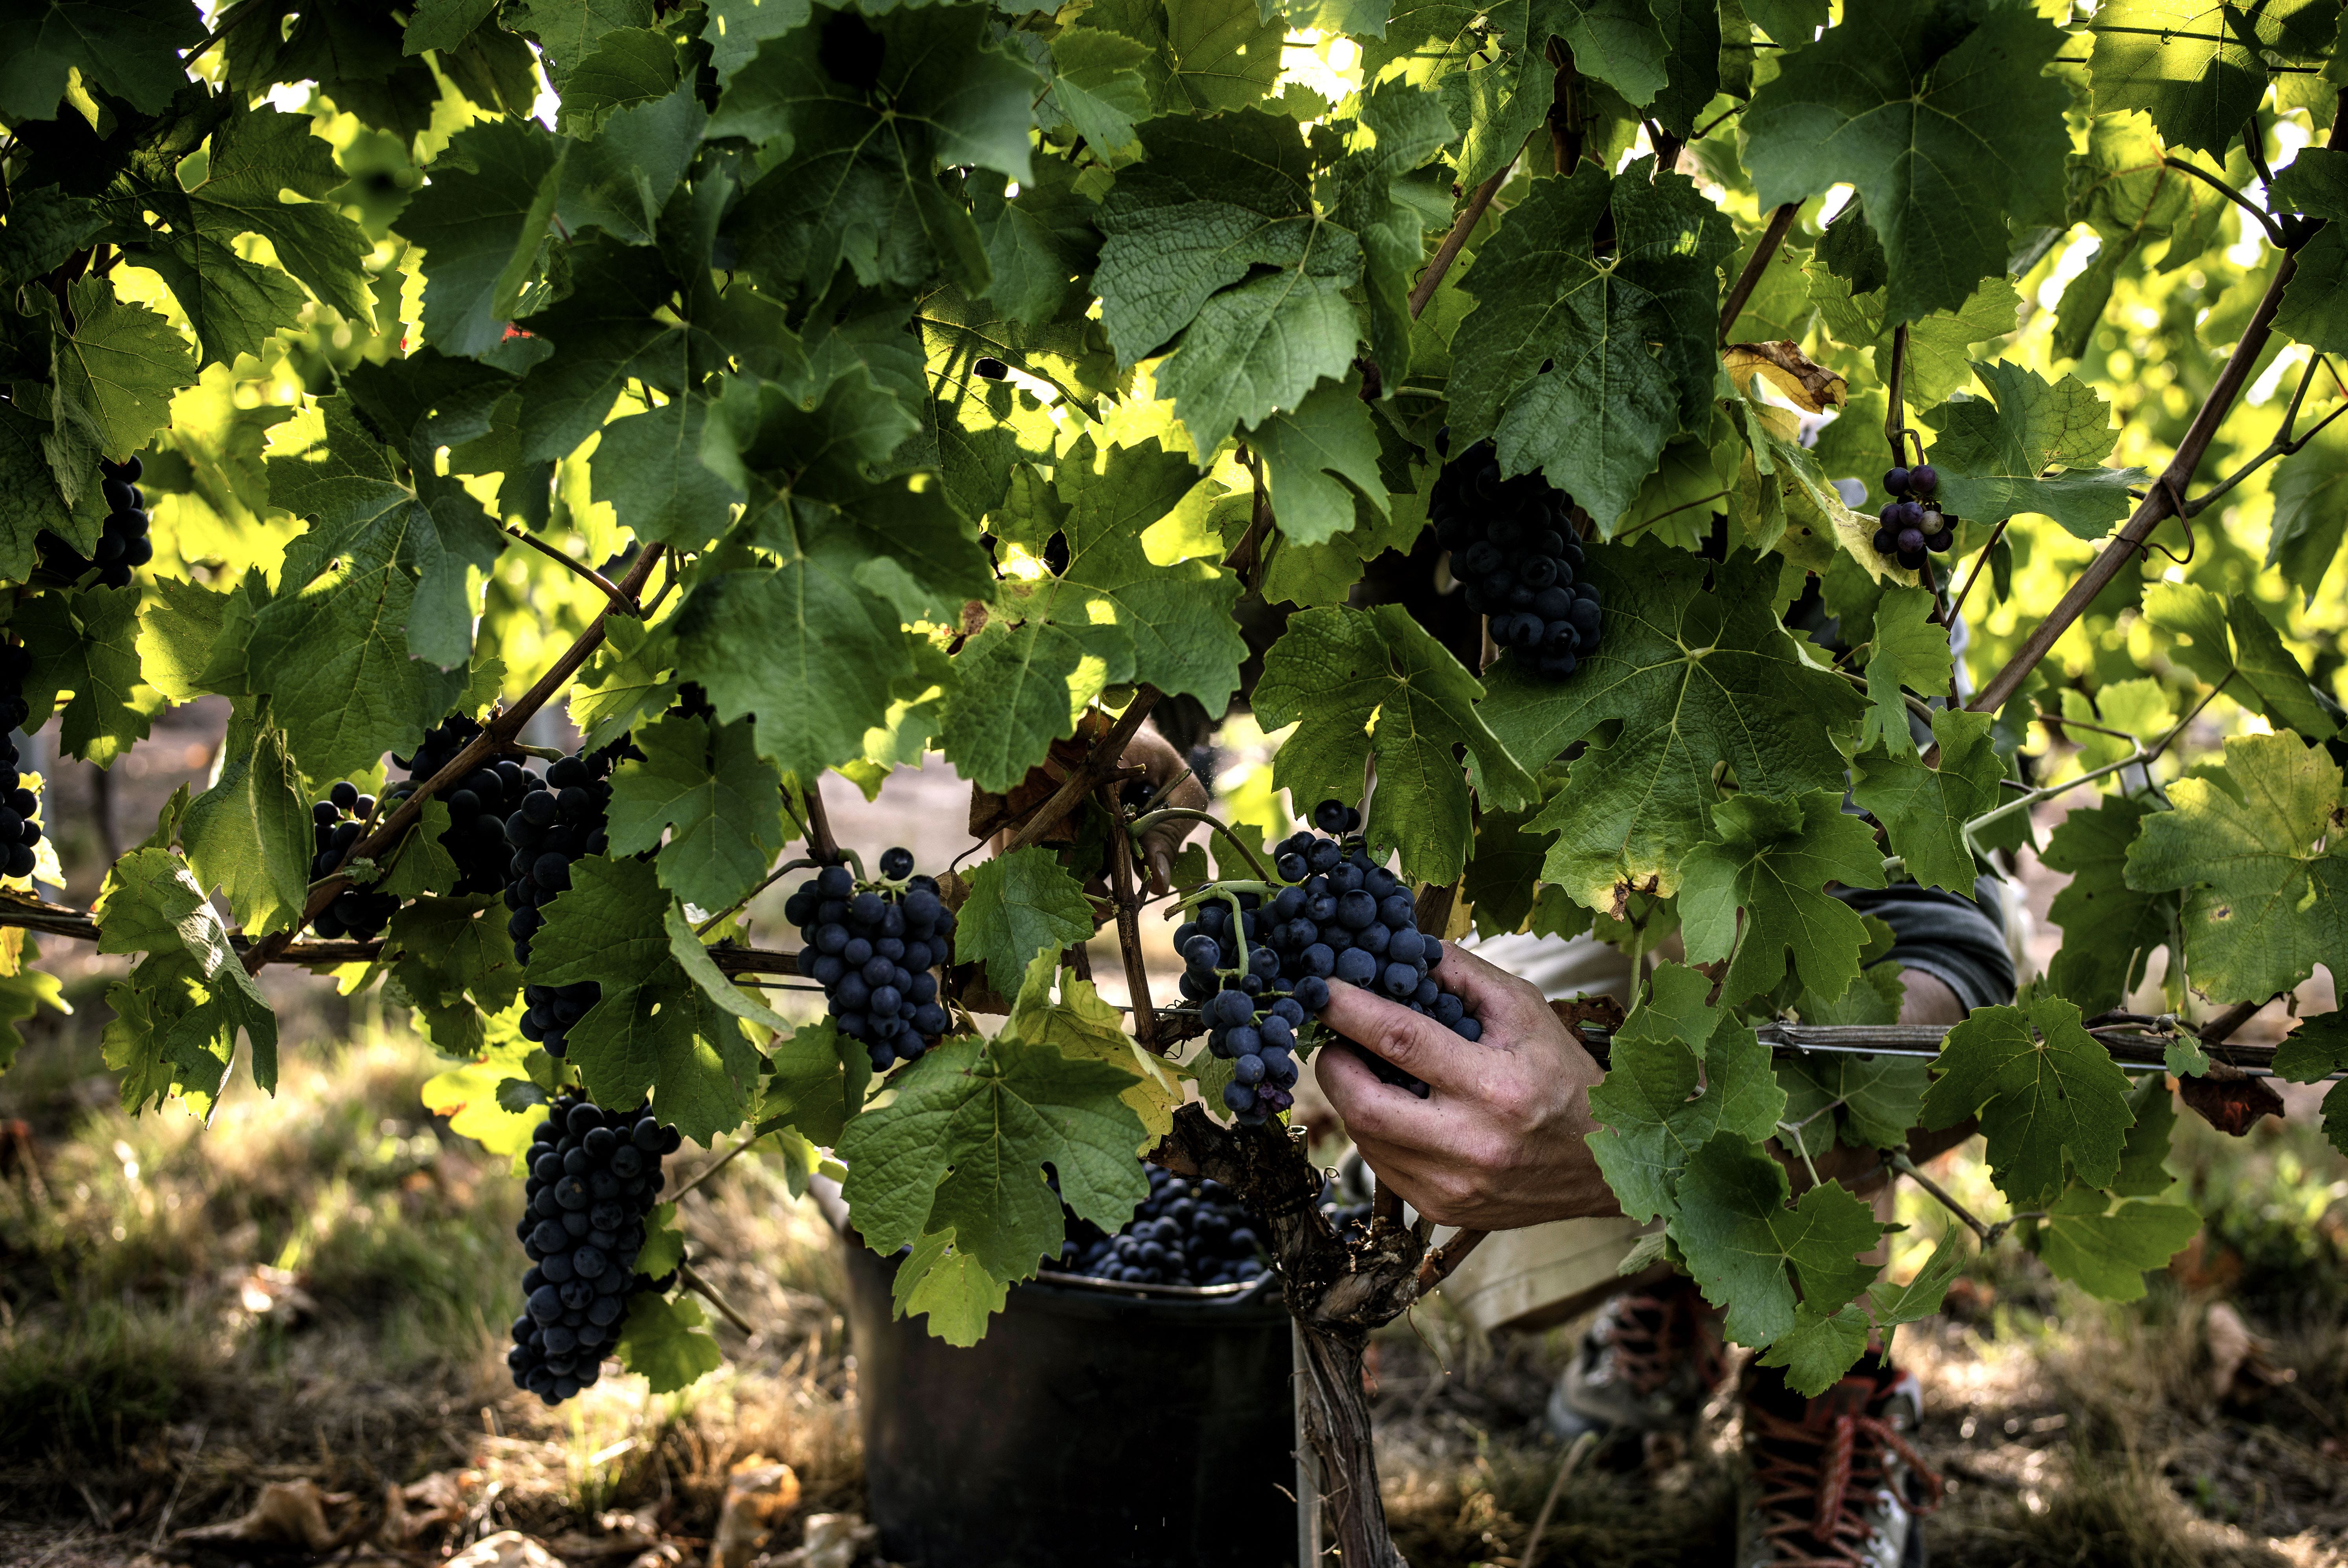 Impossible is possible Planting grapes in Siberia